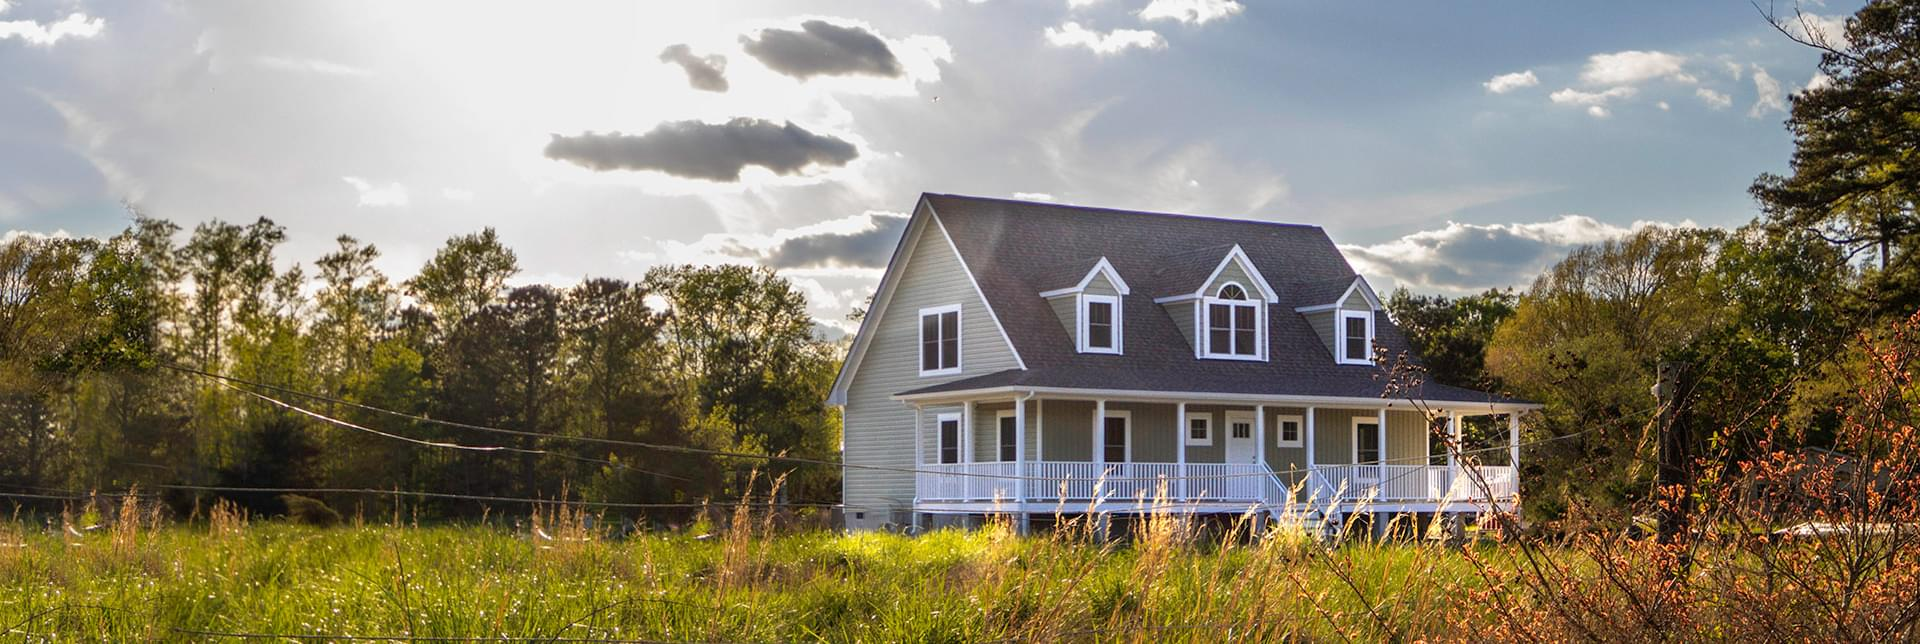 New Homes in St. Mary's County MD